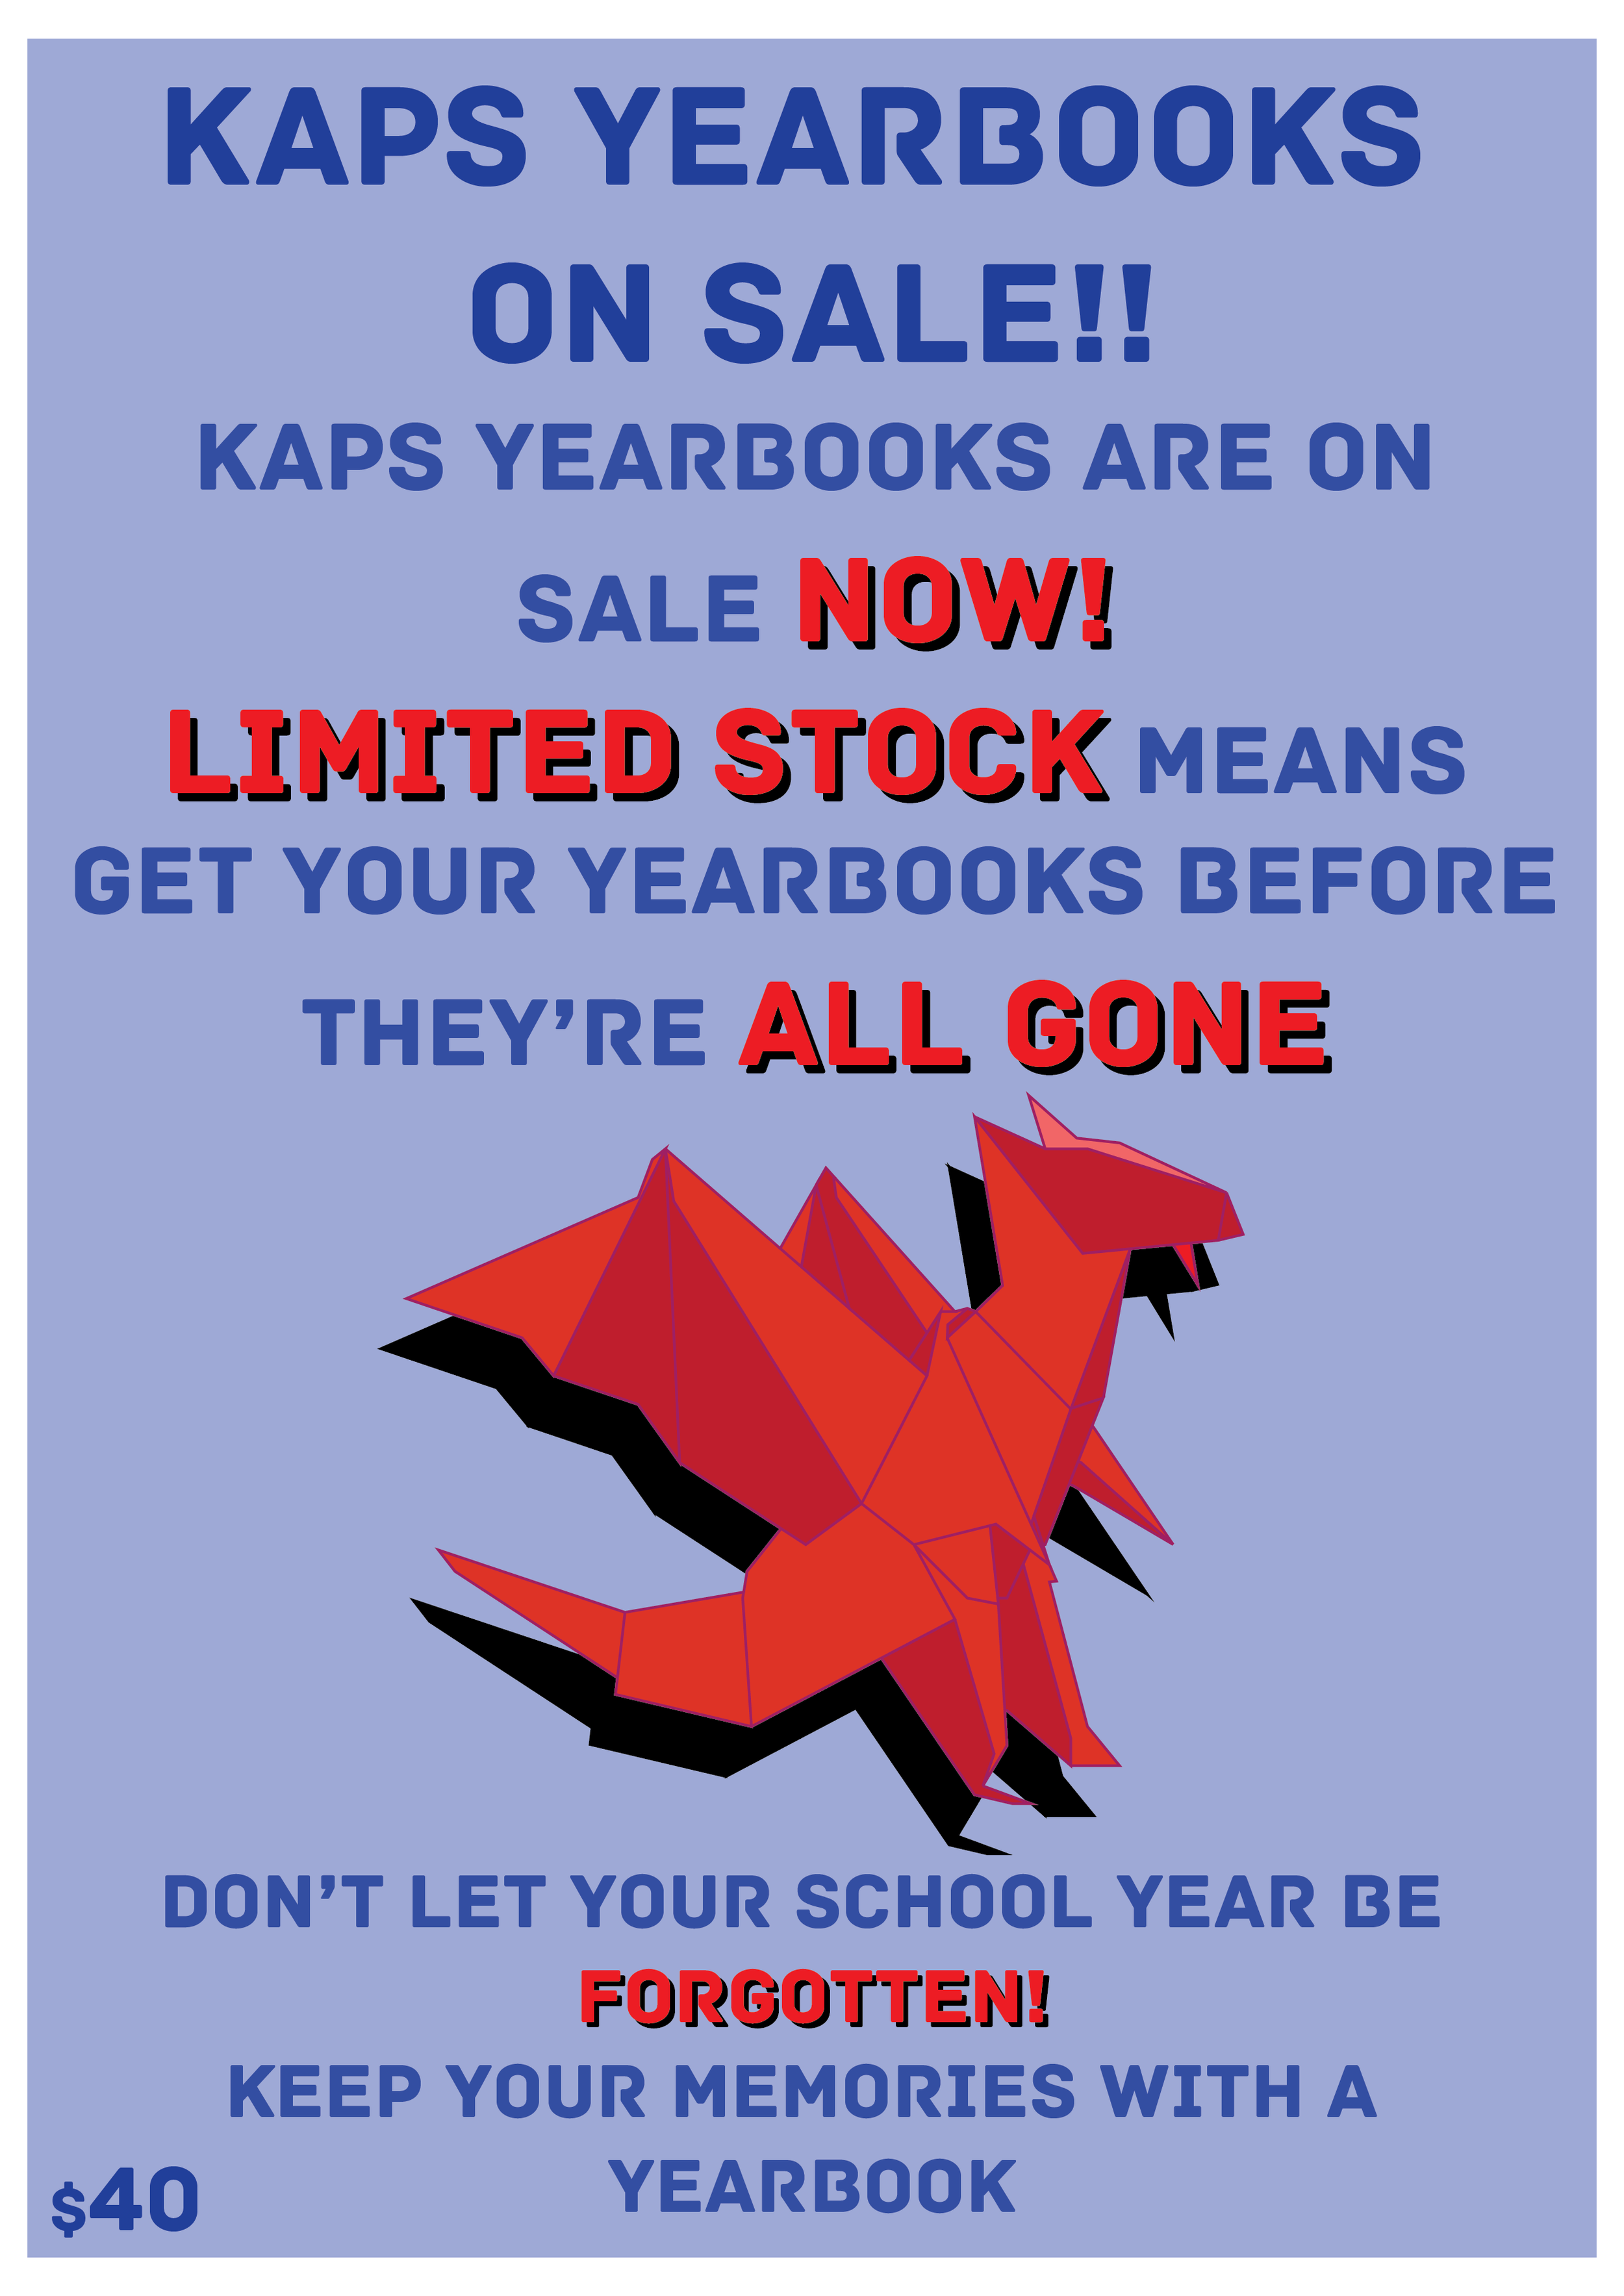 We have the following yearbooks for 5.00 ea 2005-2006, 2006-2007, 2014, 2015, 2015-2016, 2017-2018  Please Contact: Stella McPherson smcpherson@kapschool.org If you would a yearbook from prior years.  (Please Note: Current Year Books are $30 ea.)